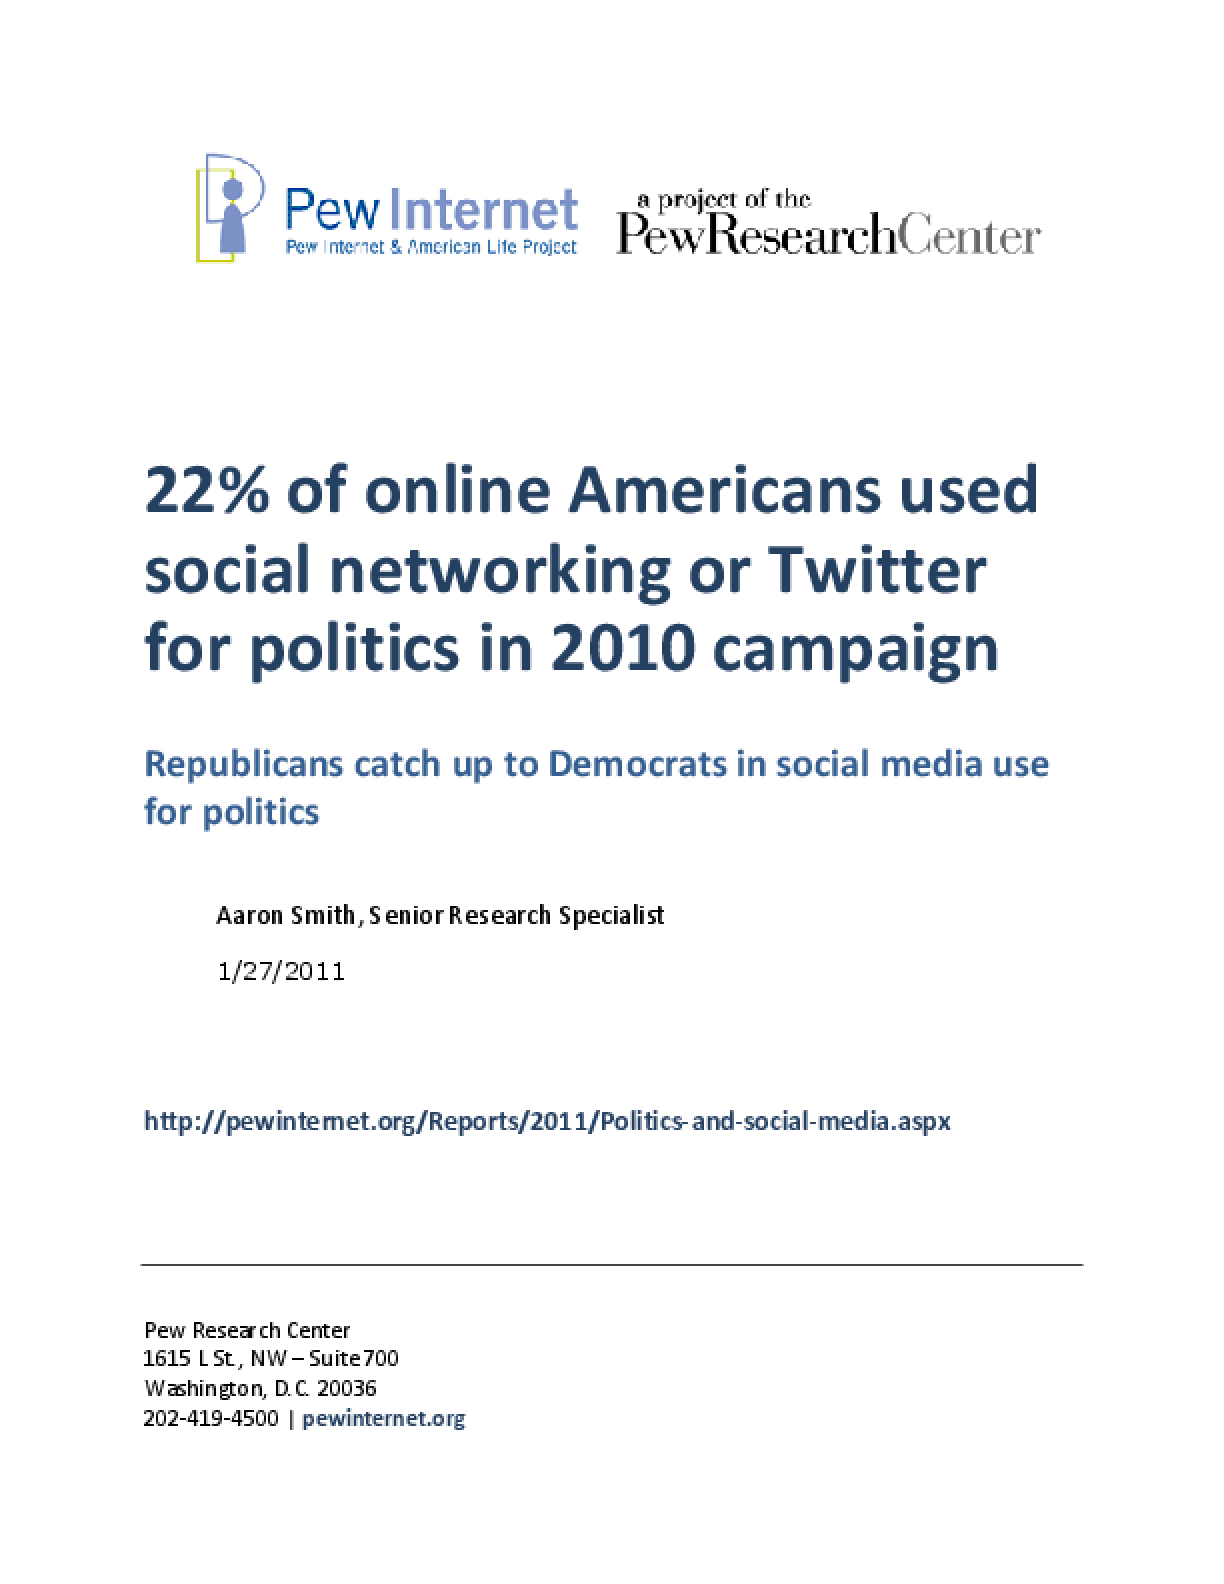 22% of Online Americans Used Social Networking or Twitter for Politics in 2010 Campaign